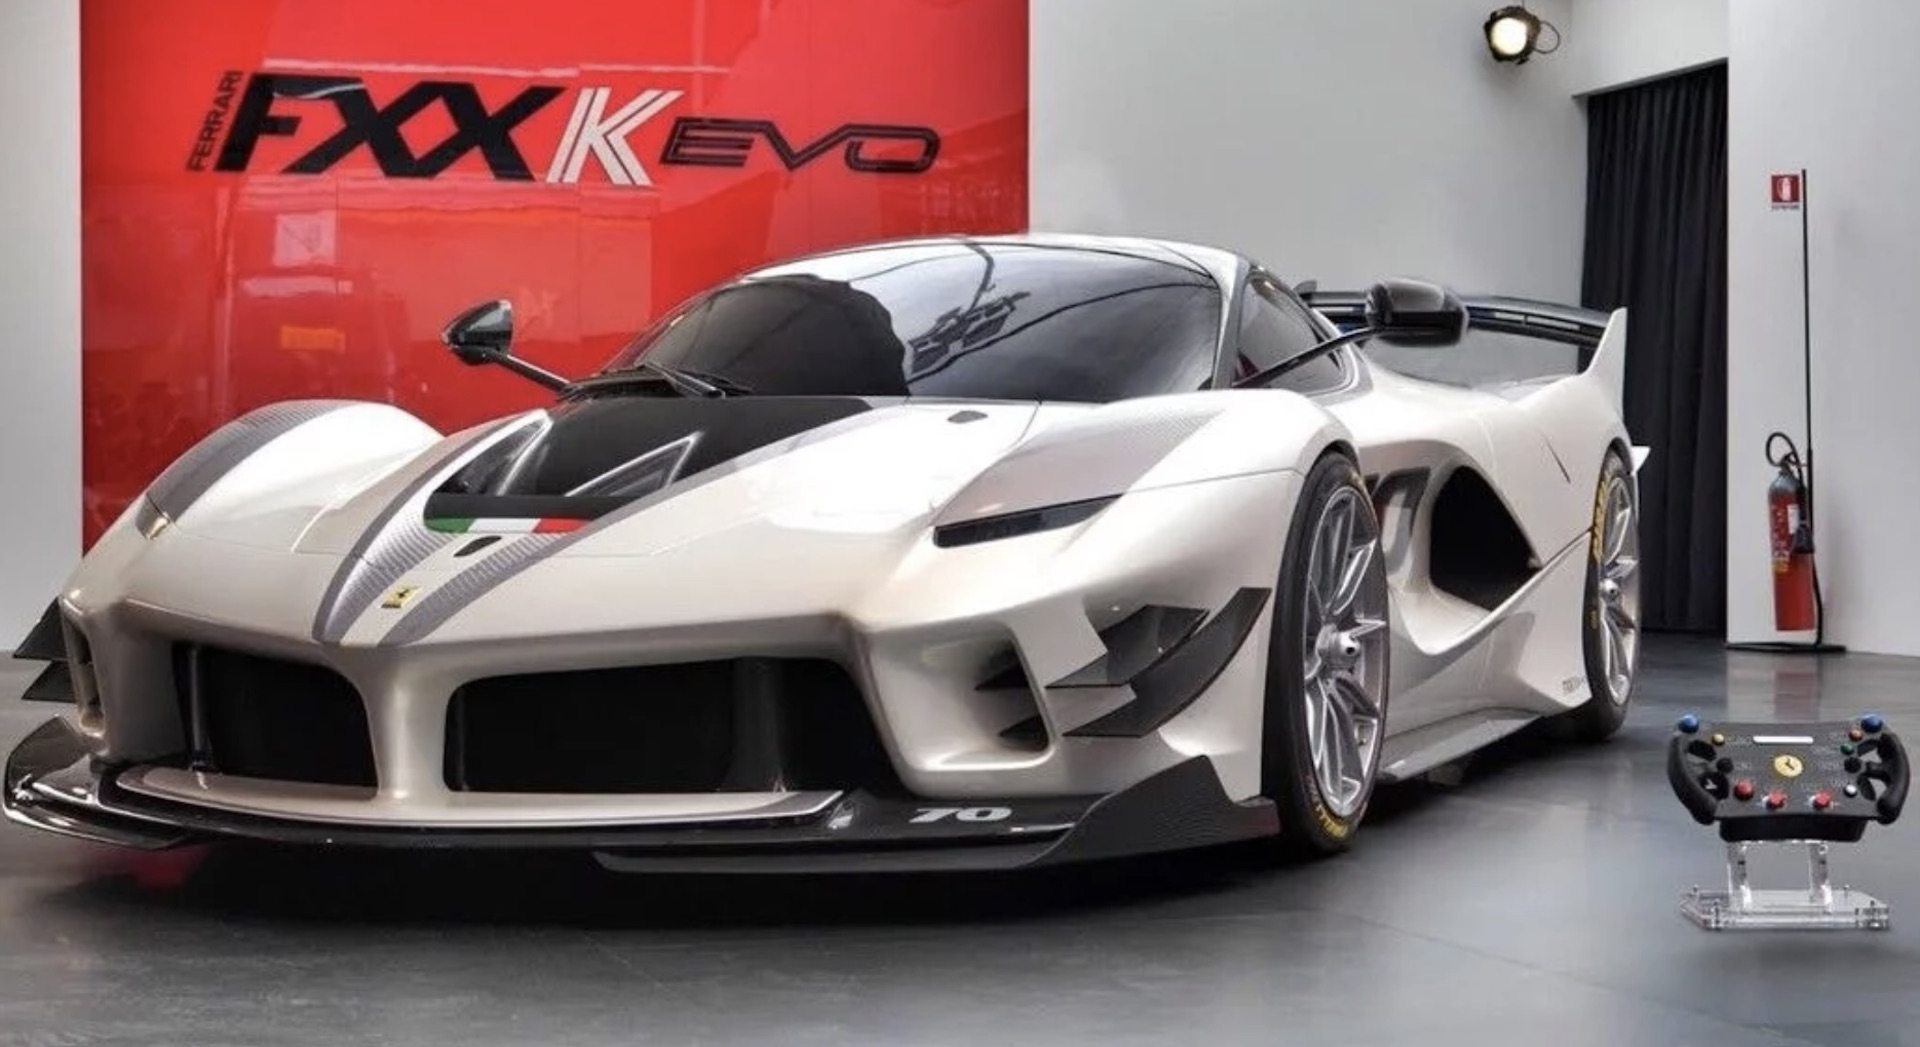 Ferrari Fxx K Evo Listed For Sale Seller Claims Street Legal Conversion Possible